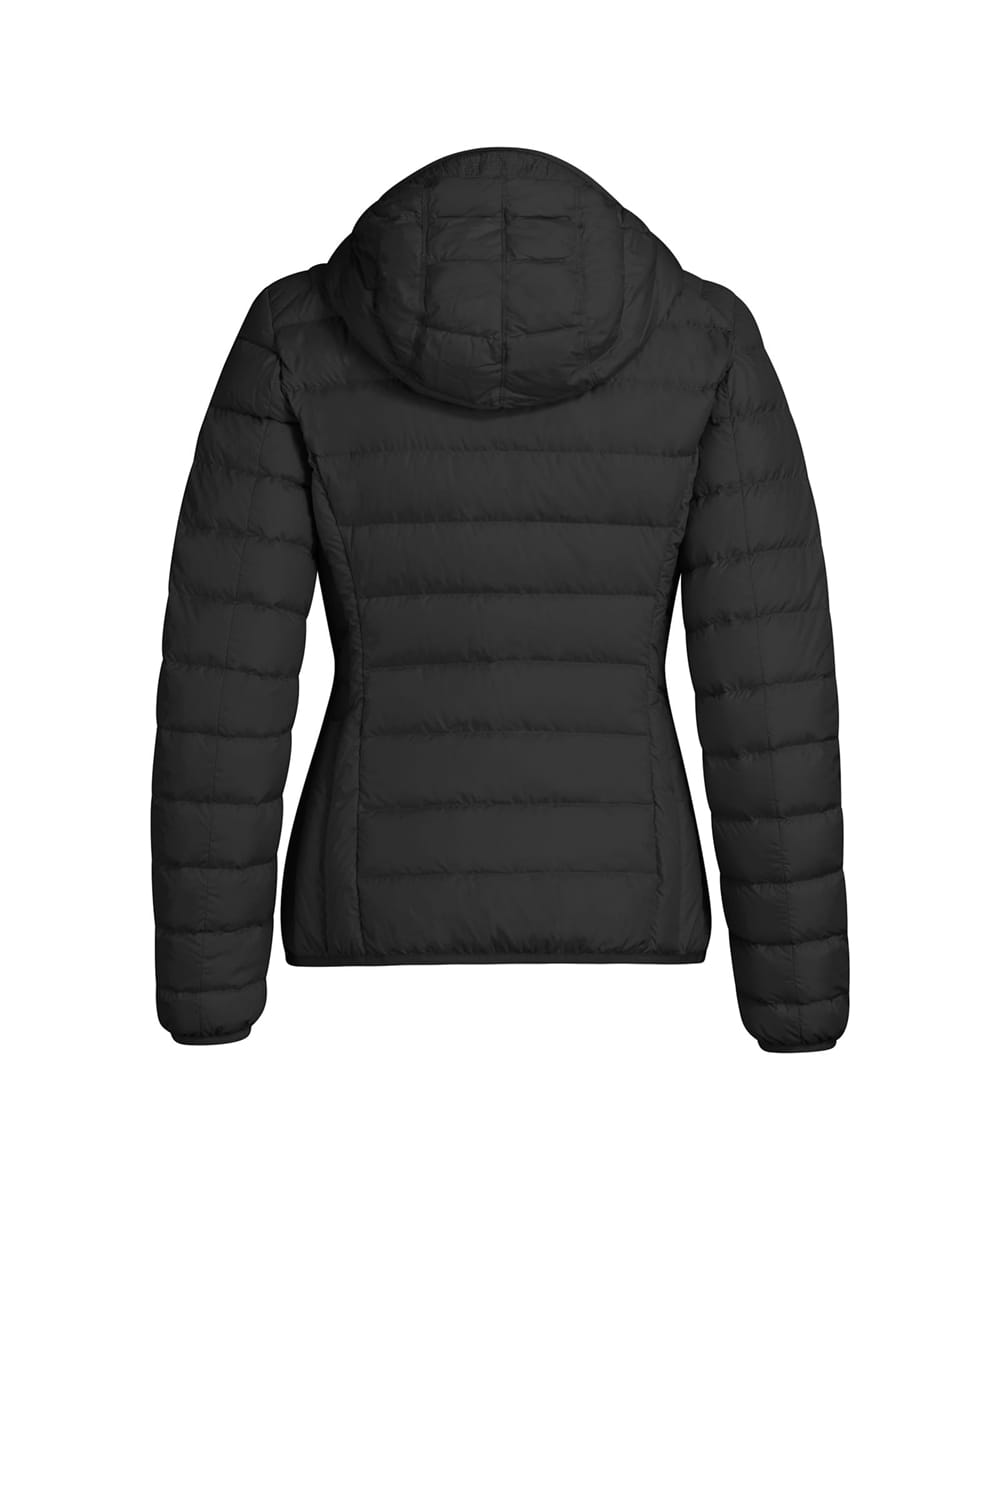 6992fc42f Parajumpers Juliet Jakke Sort